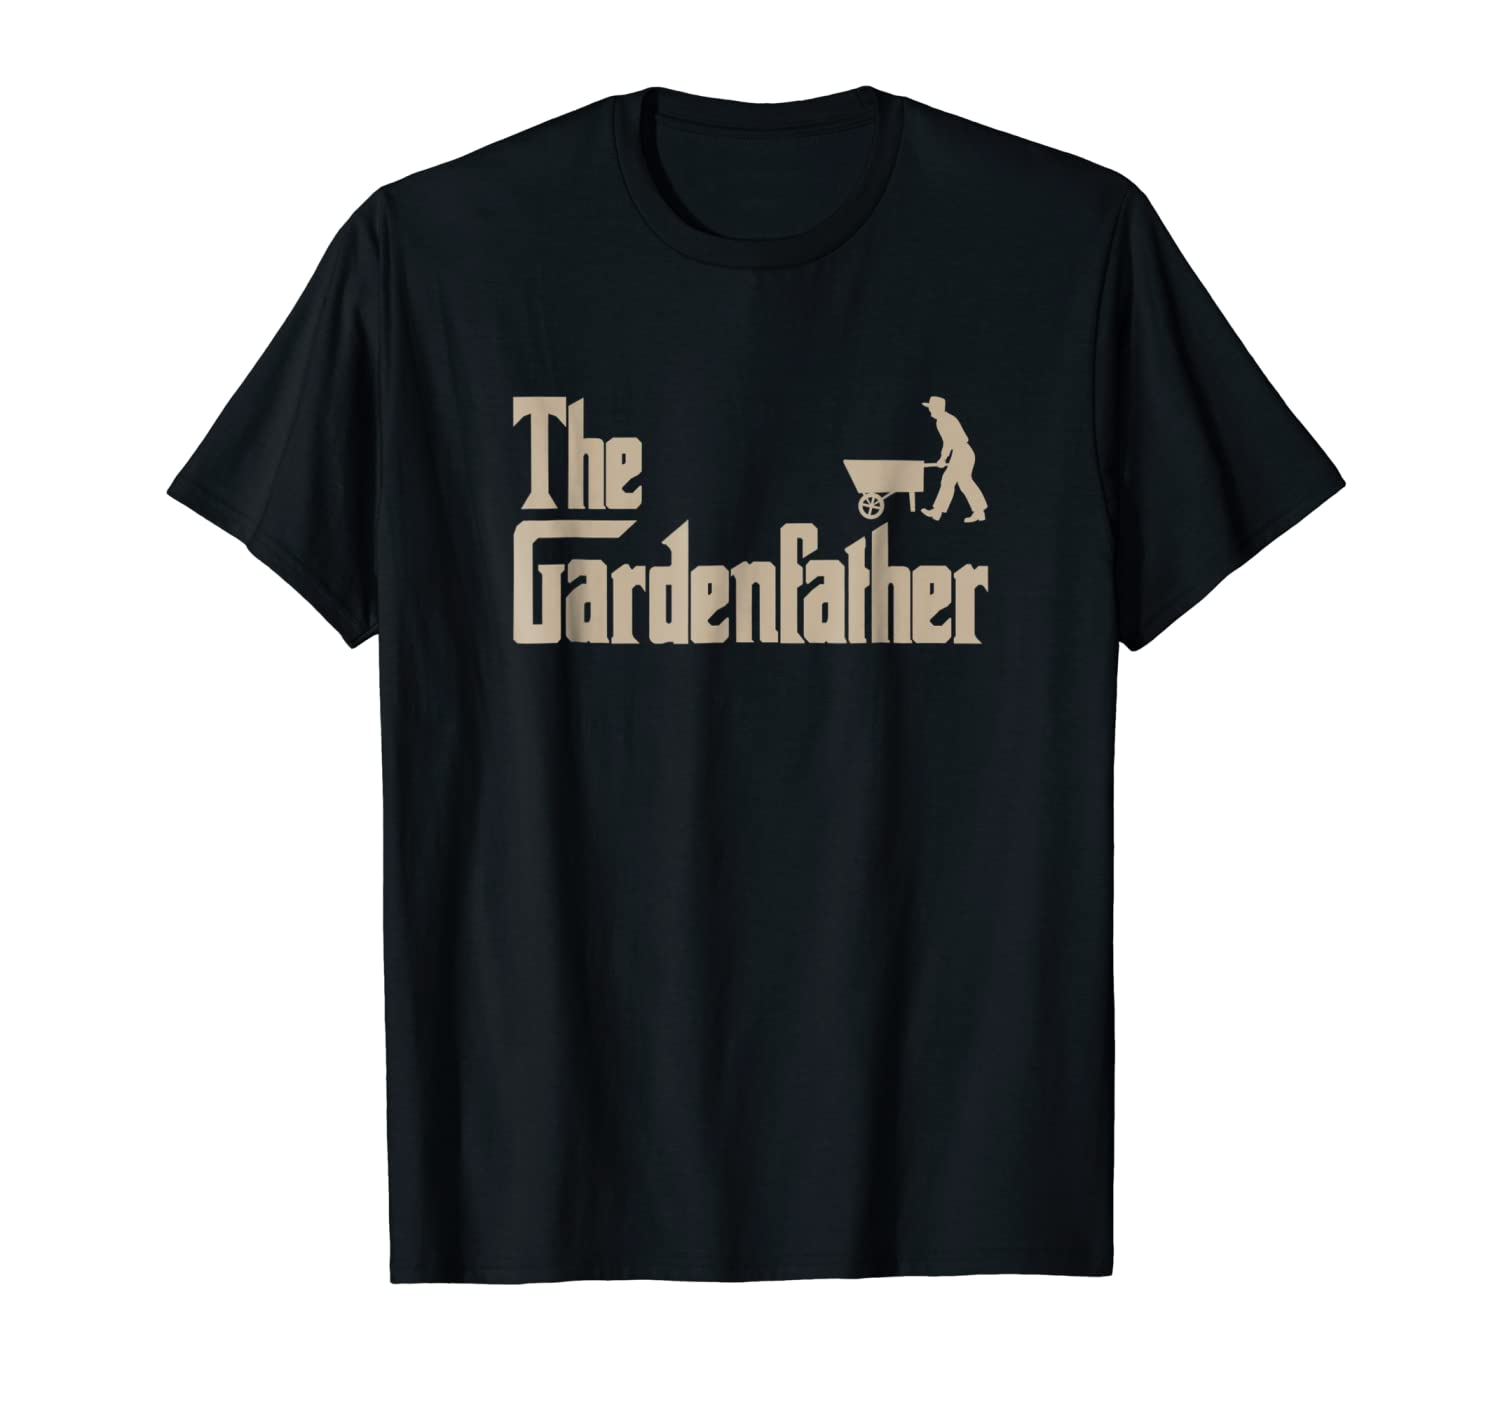 Mens Best Gardening Father Gifts The Gardenfather Men Tee Shirts